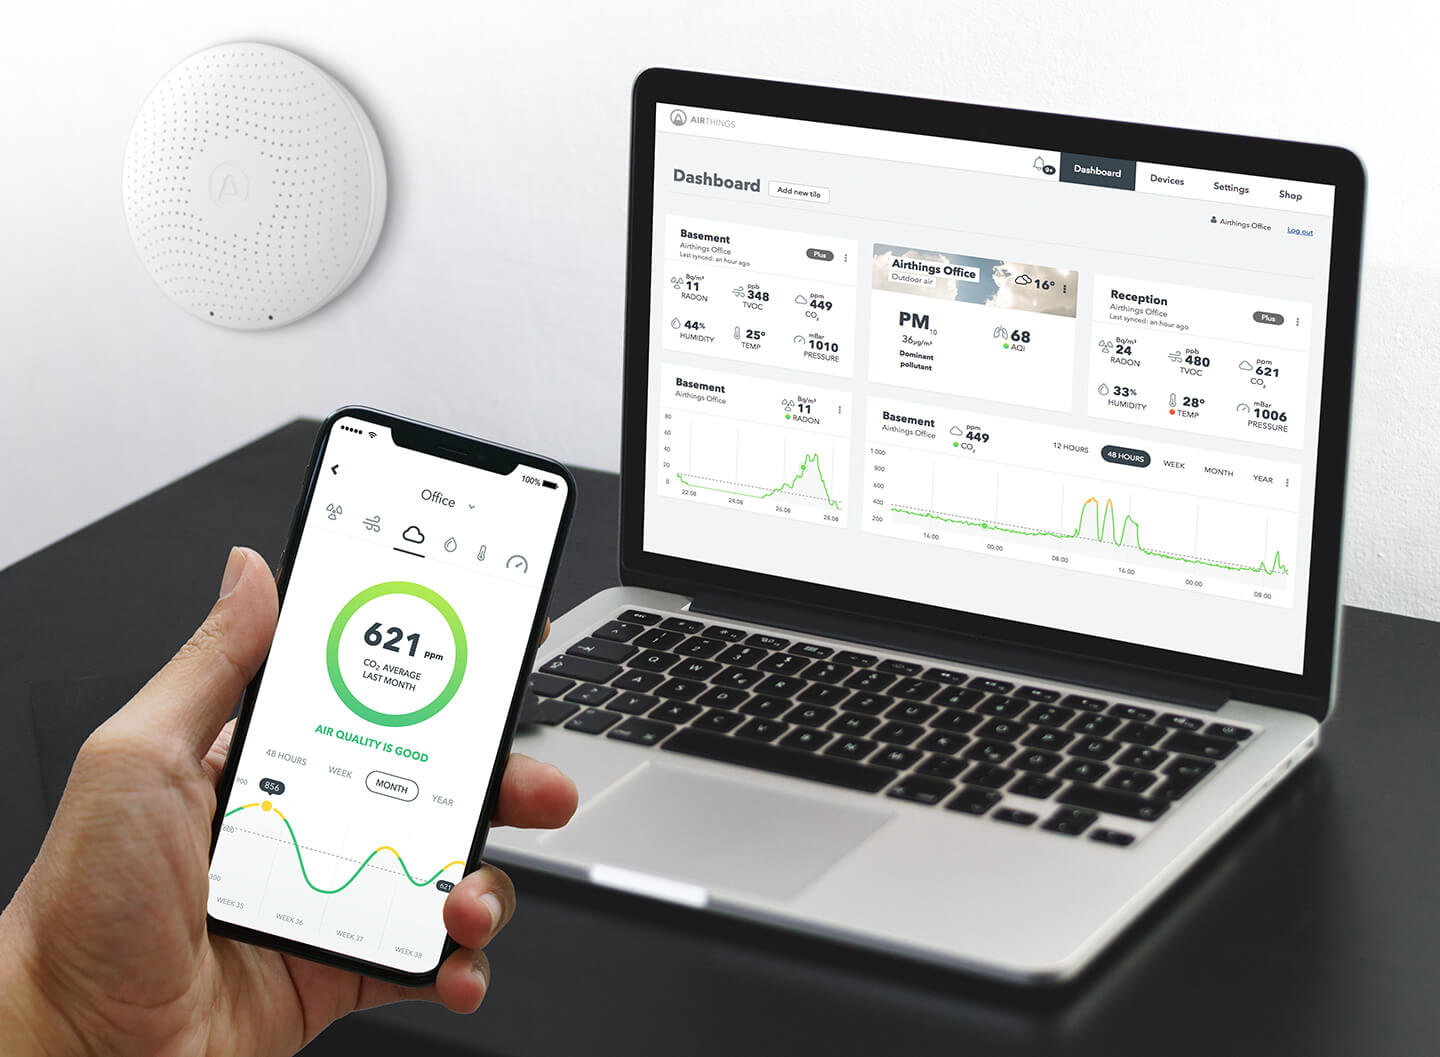 Airthings App and Online Dashboard